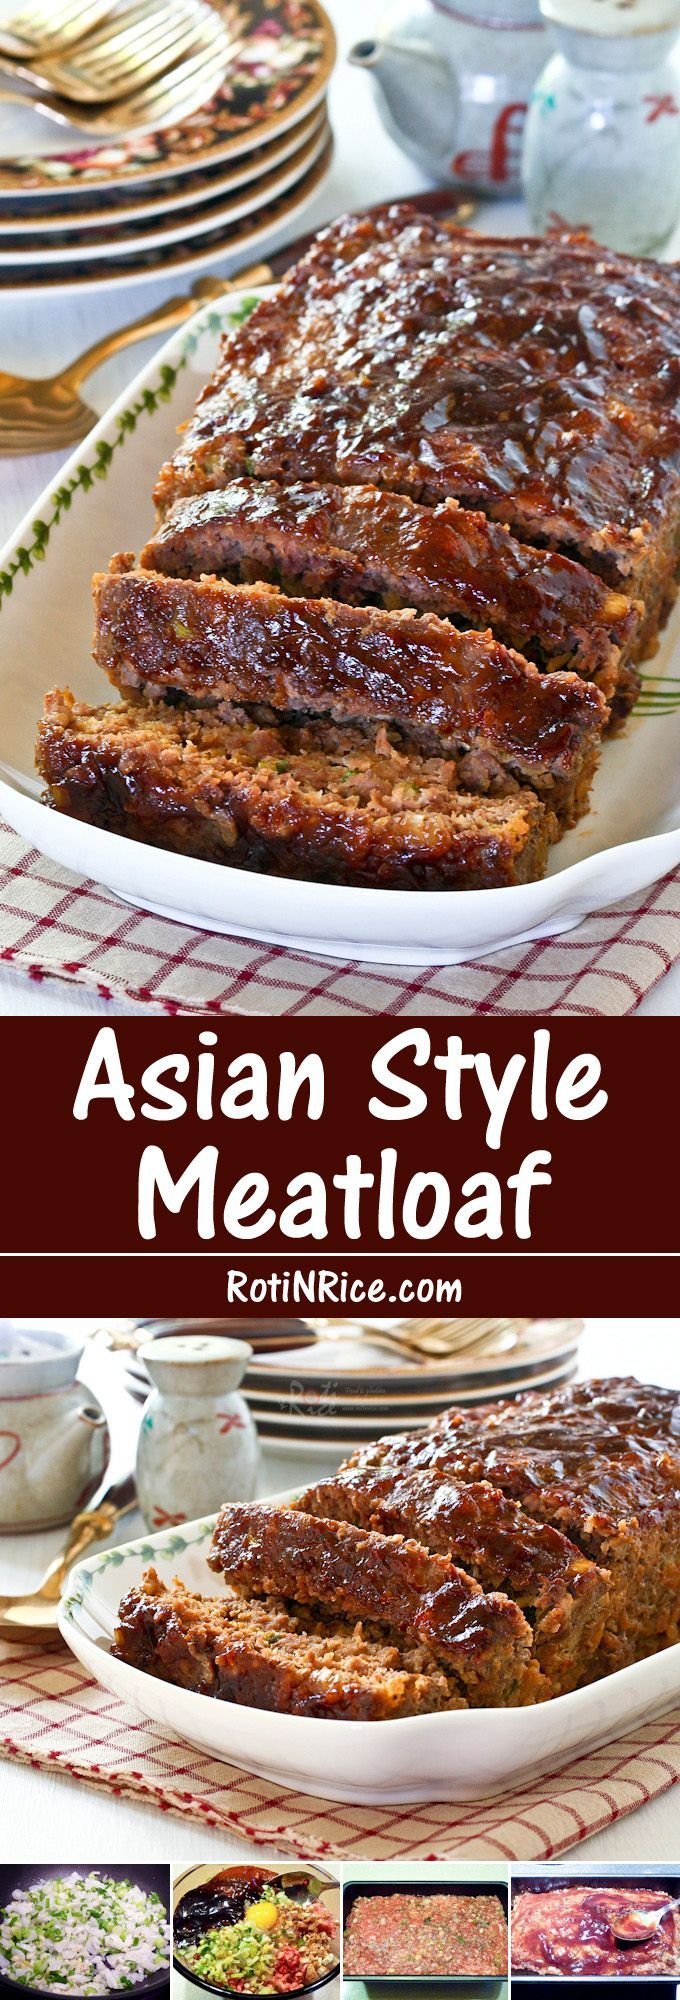 Moist and flavorful Asian Style Meatloaf flavored with hoisin and soy sauce. Delicious served with rice for a truly Asian taste.